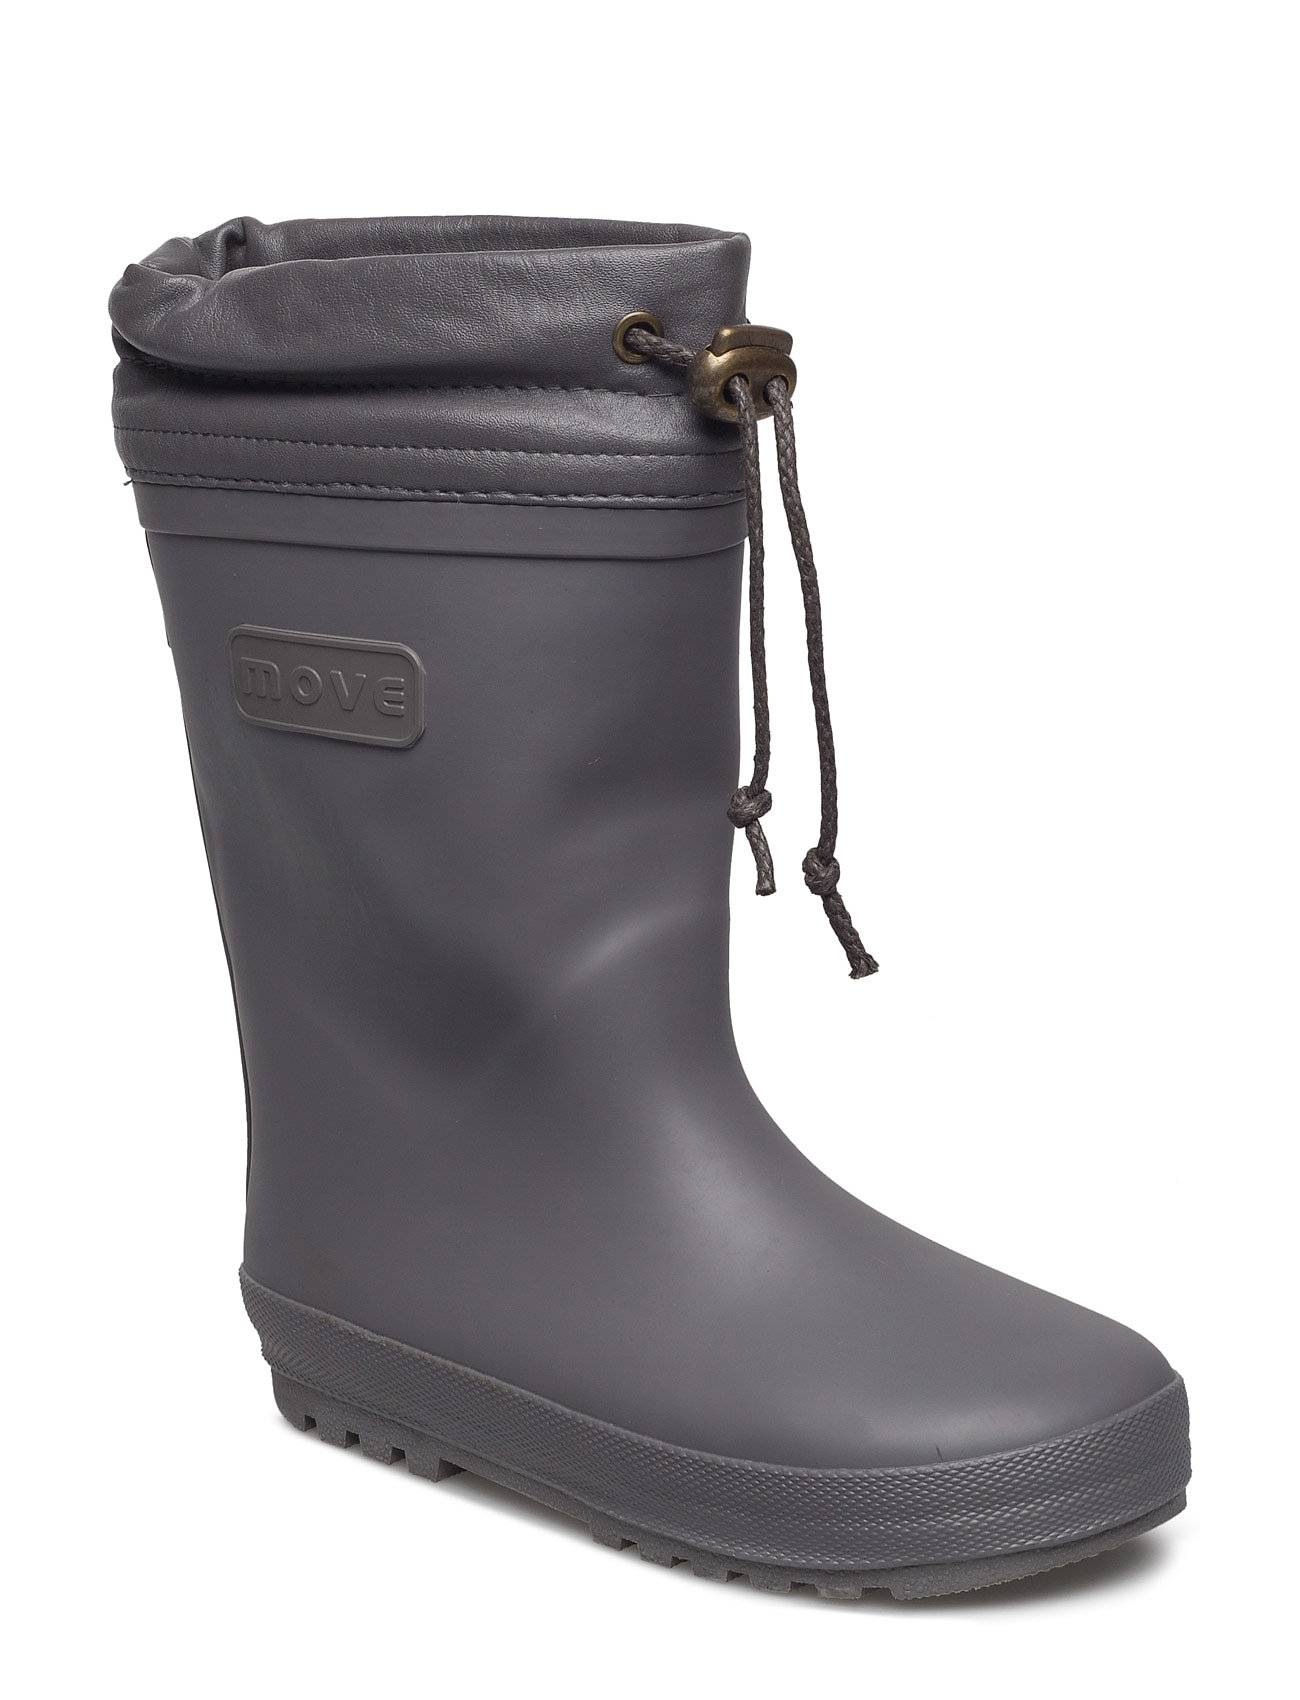 Move by Melton Unisex - Winter Wellie Lux